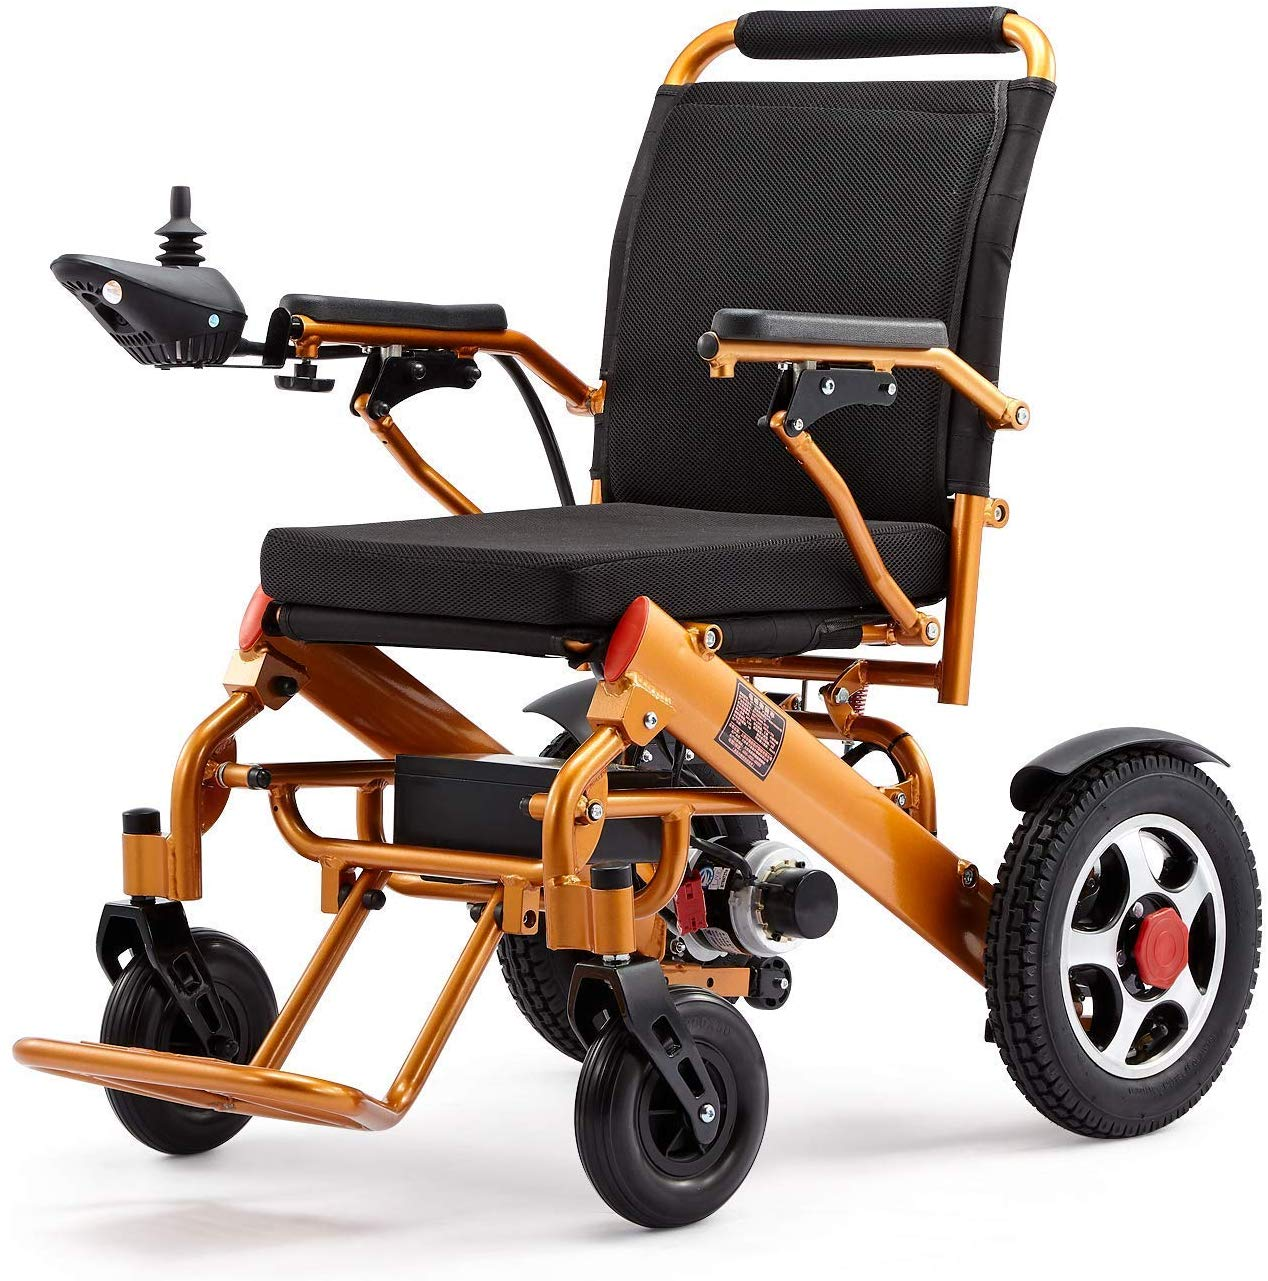 Lifestyle E-7 Deluxe Compact Wheel Chair